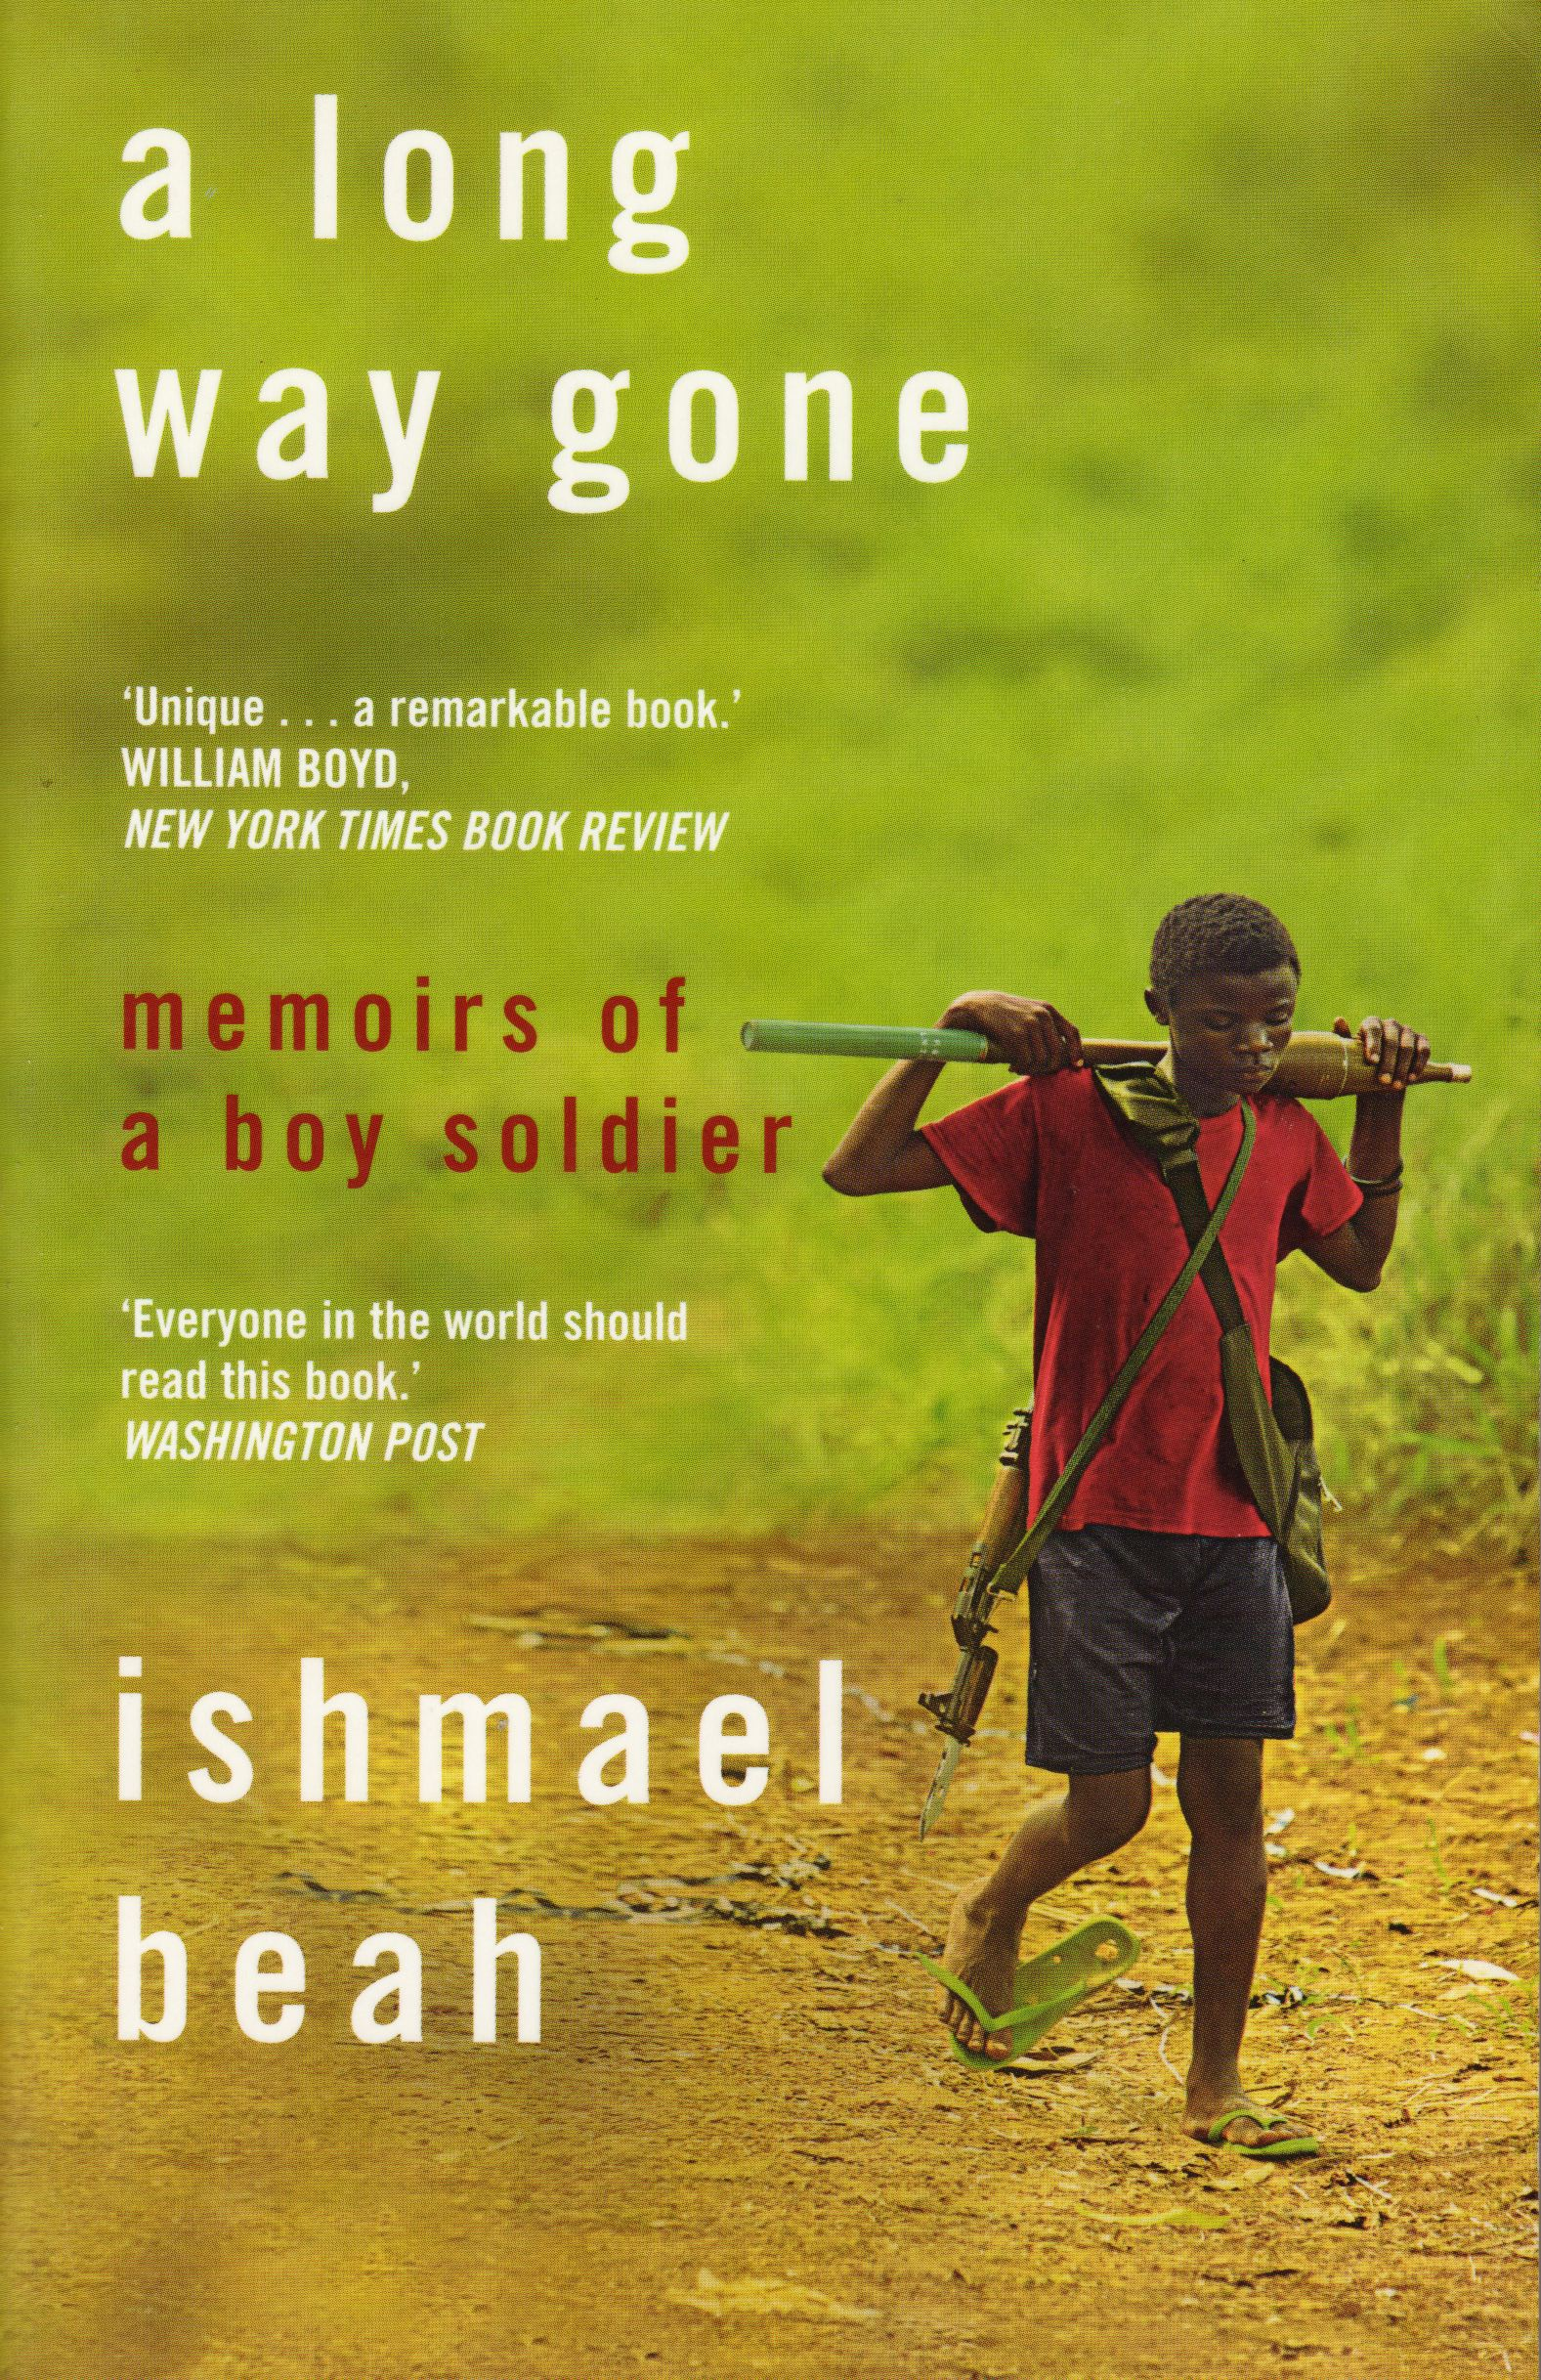 "quotes from a long way gone essay Ishmael beah's 'a long way gone' is 'a long way from truth,' sierra leonean magazine says in a report that raises 'serious doubts' about its story ""out of the mouth of a babe soldier"" (quotes from ishmael beah's book and interviews that appear contradictory), one-minute book reviews, feb."